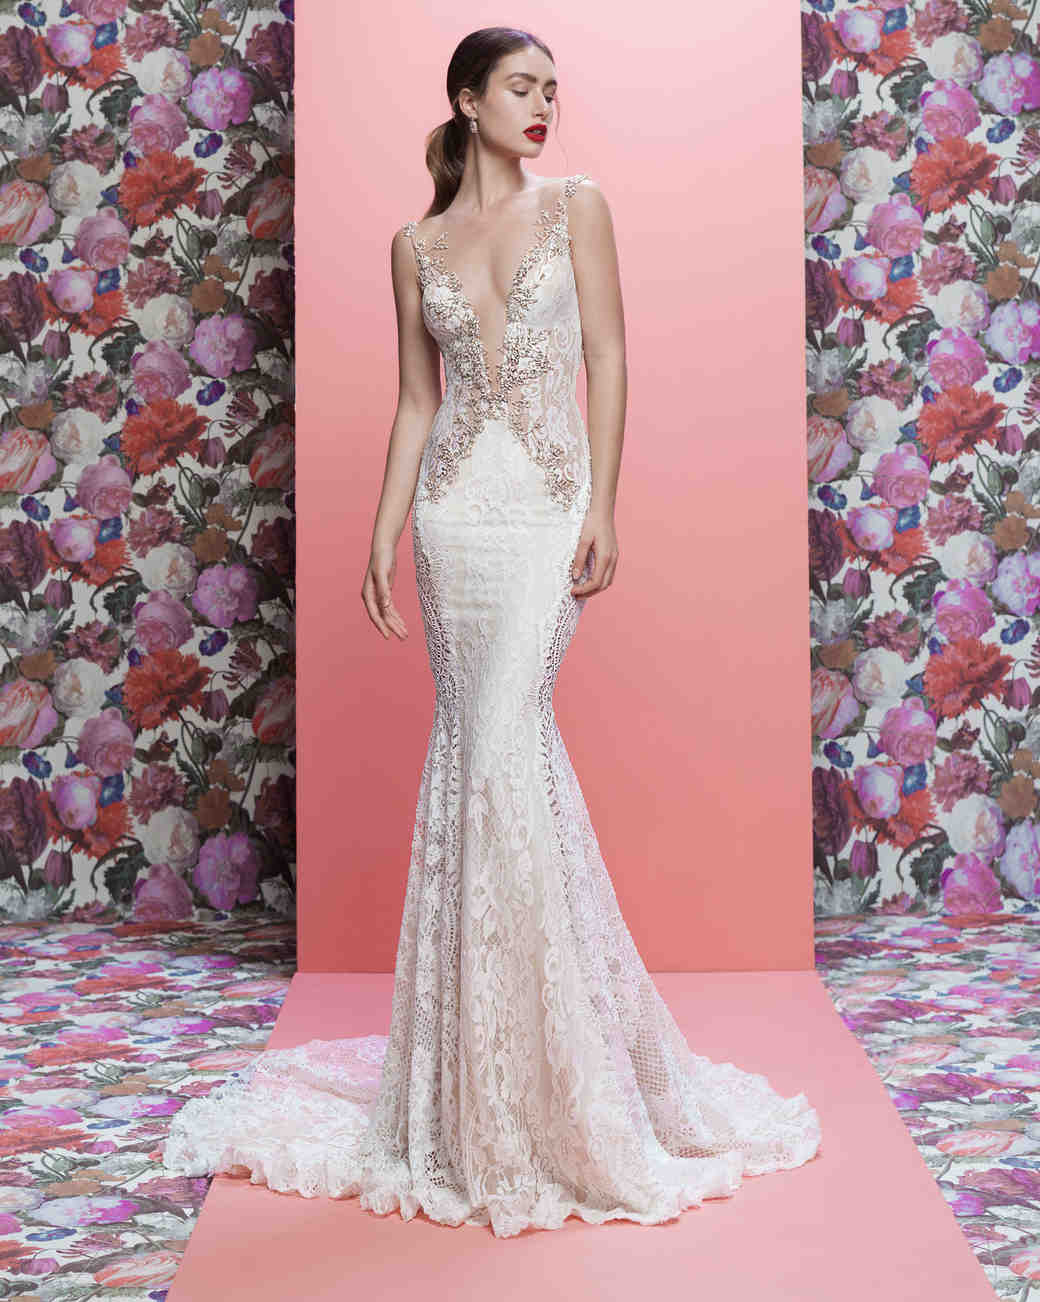 b41176c9d1d Galia Lahav Couture Spring 2019 Wedding Dress Collection